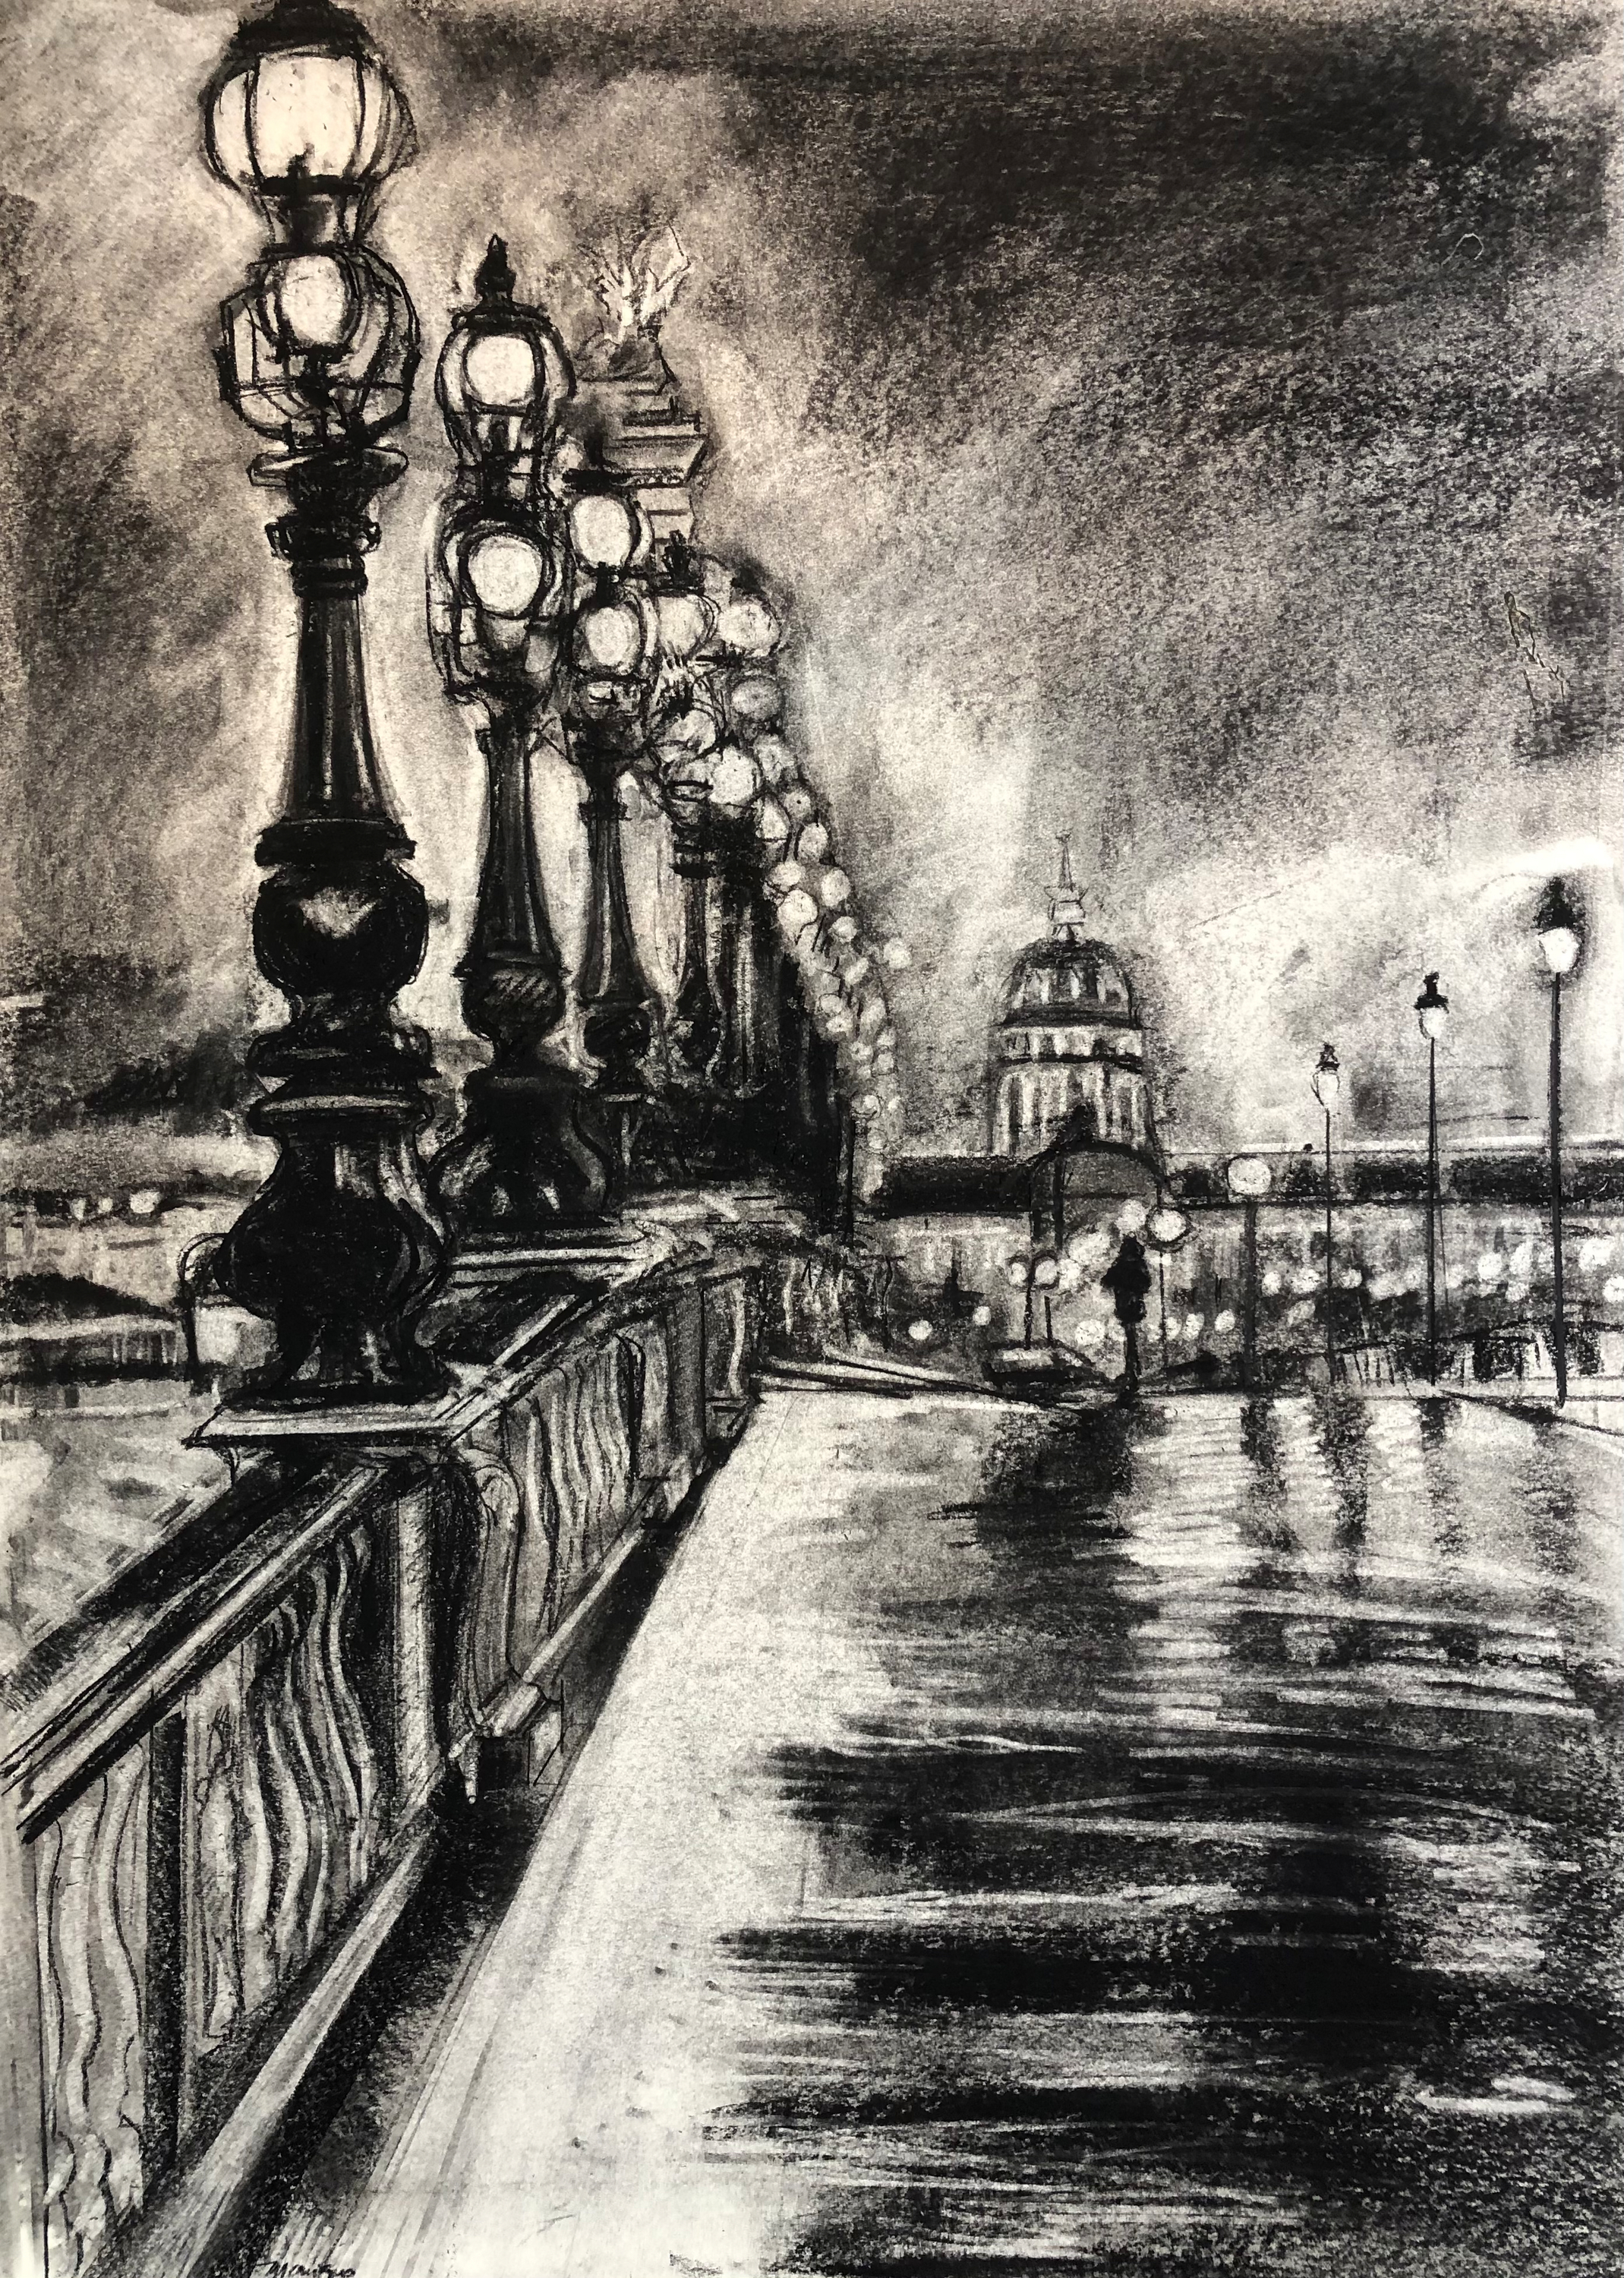 Paris evening glow charcoal on paper 17x14 b4adgn